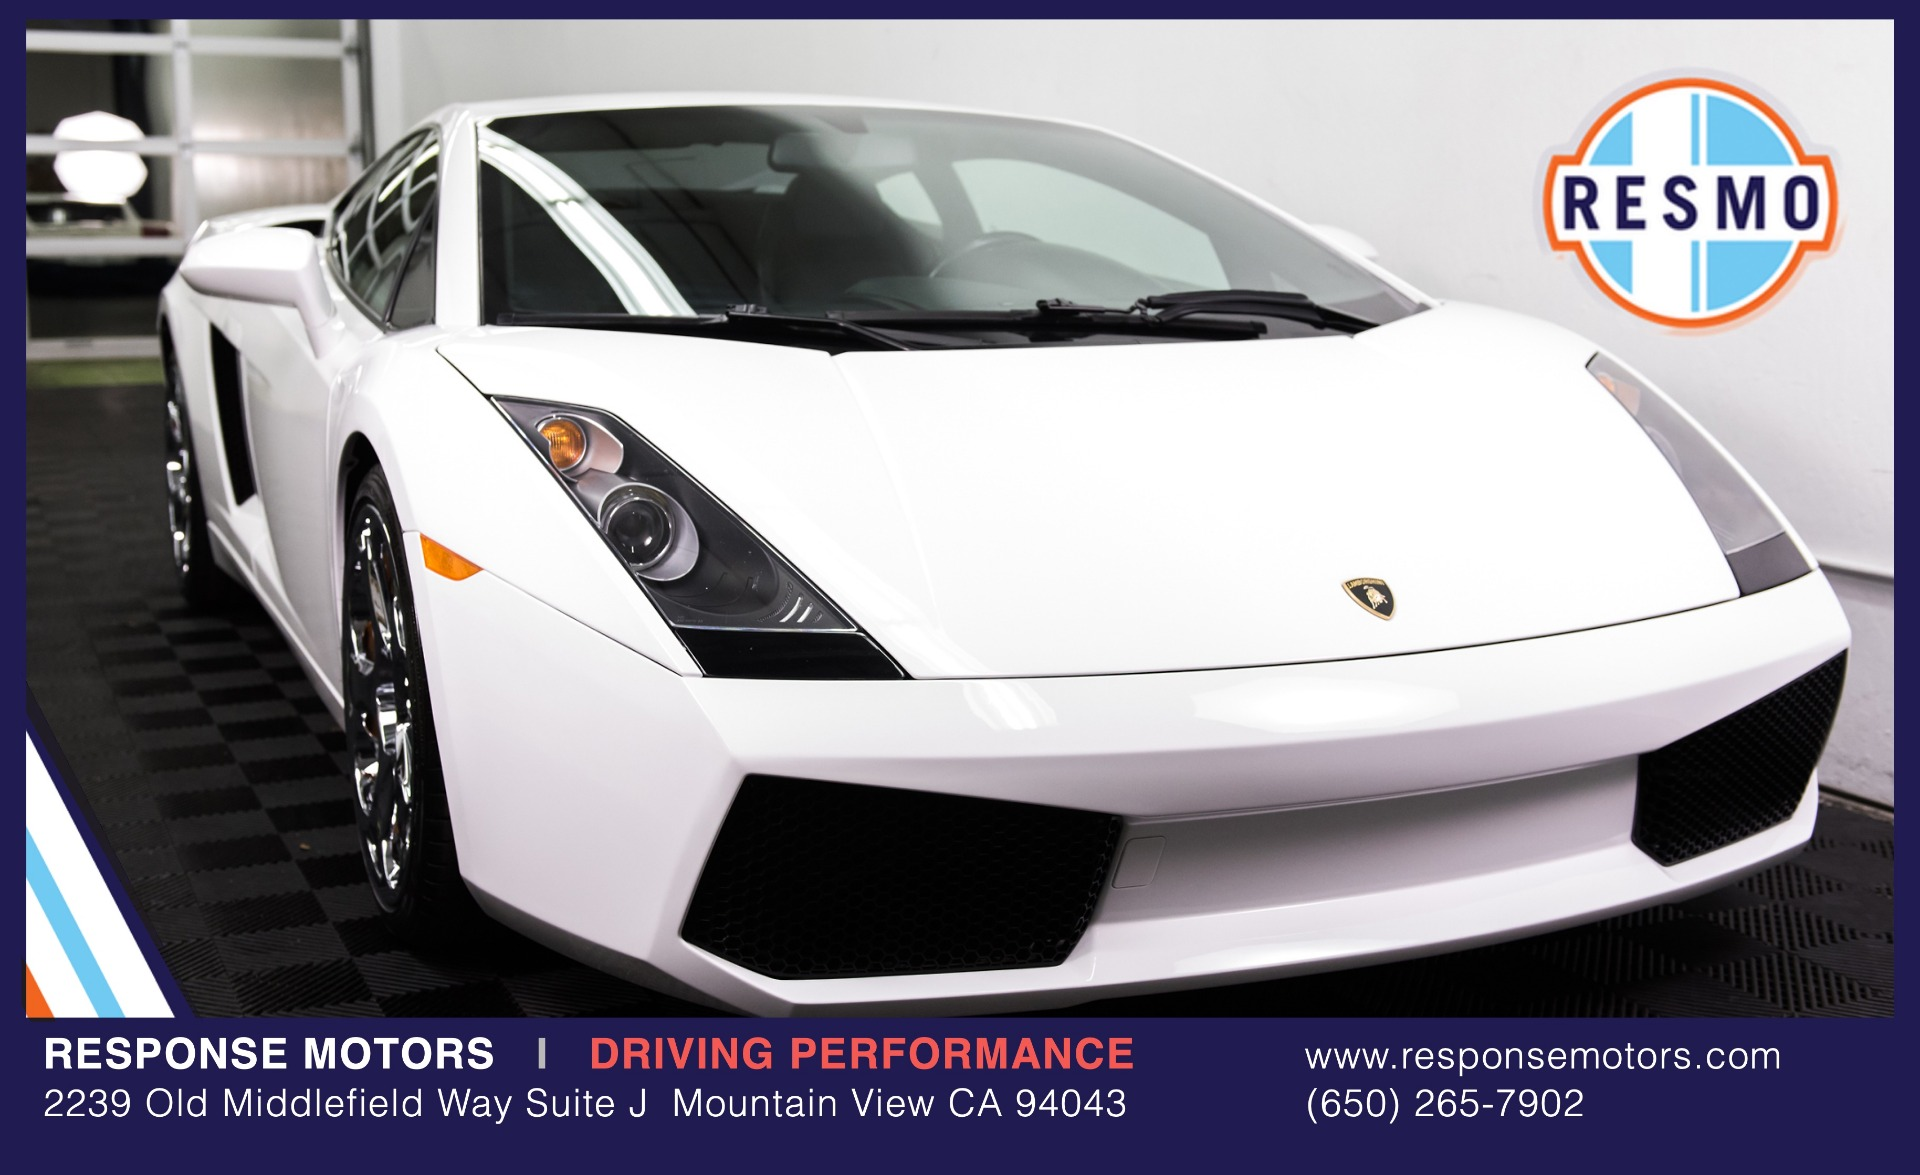 Used 2004 Lamborghini Gallardo For Sale 79 999 Response Motors